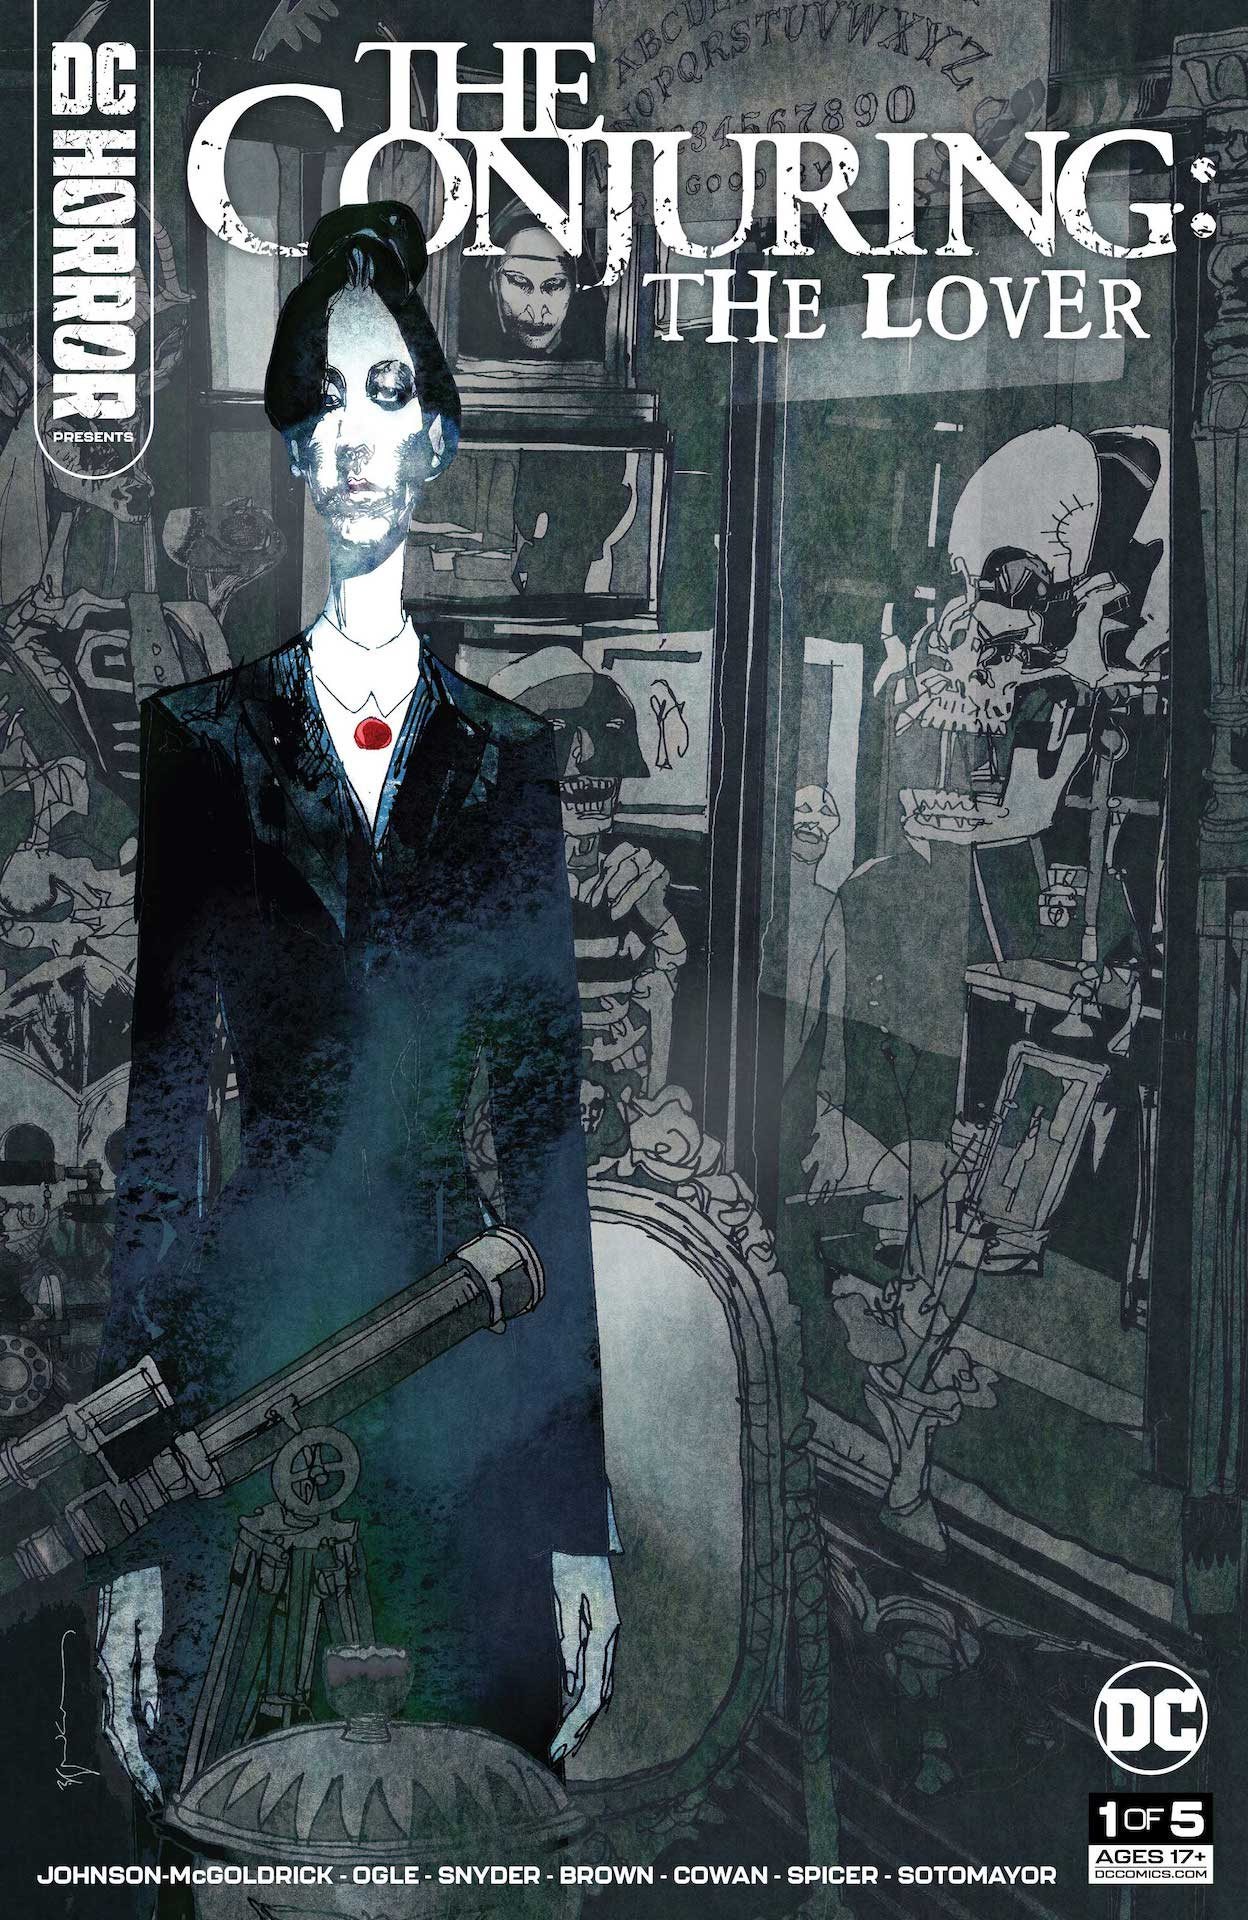 DC Preview: DC Horror Presents: The Conjuring: The Lover #1